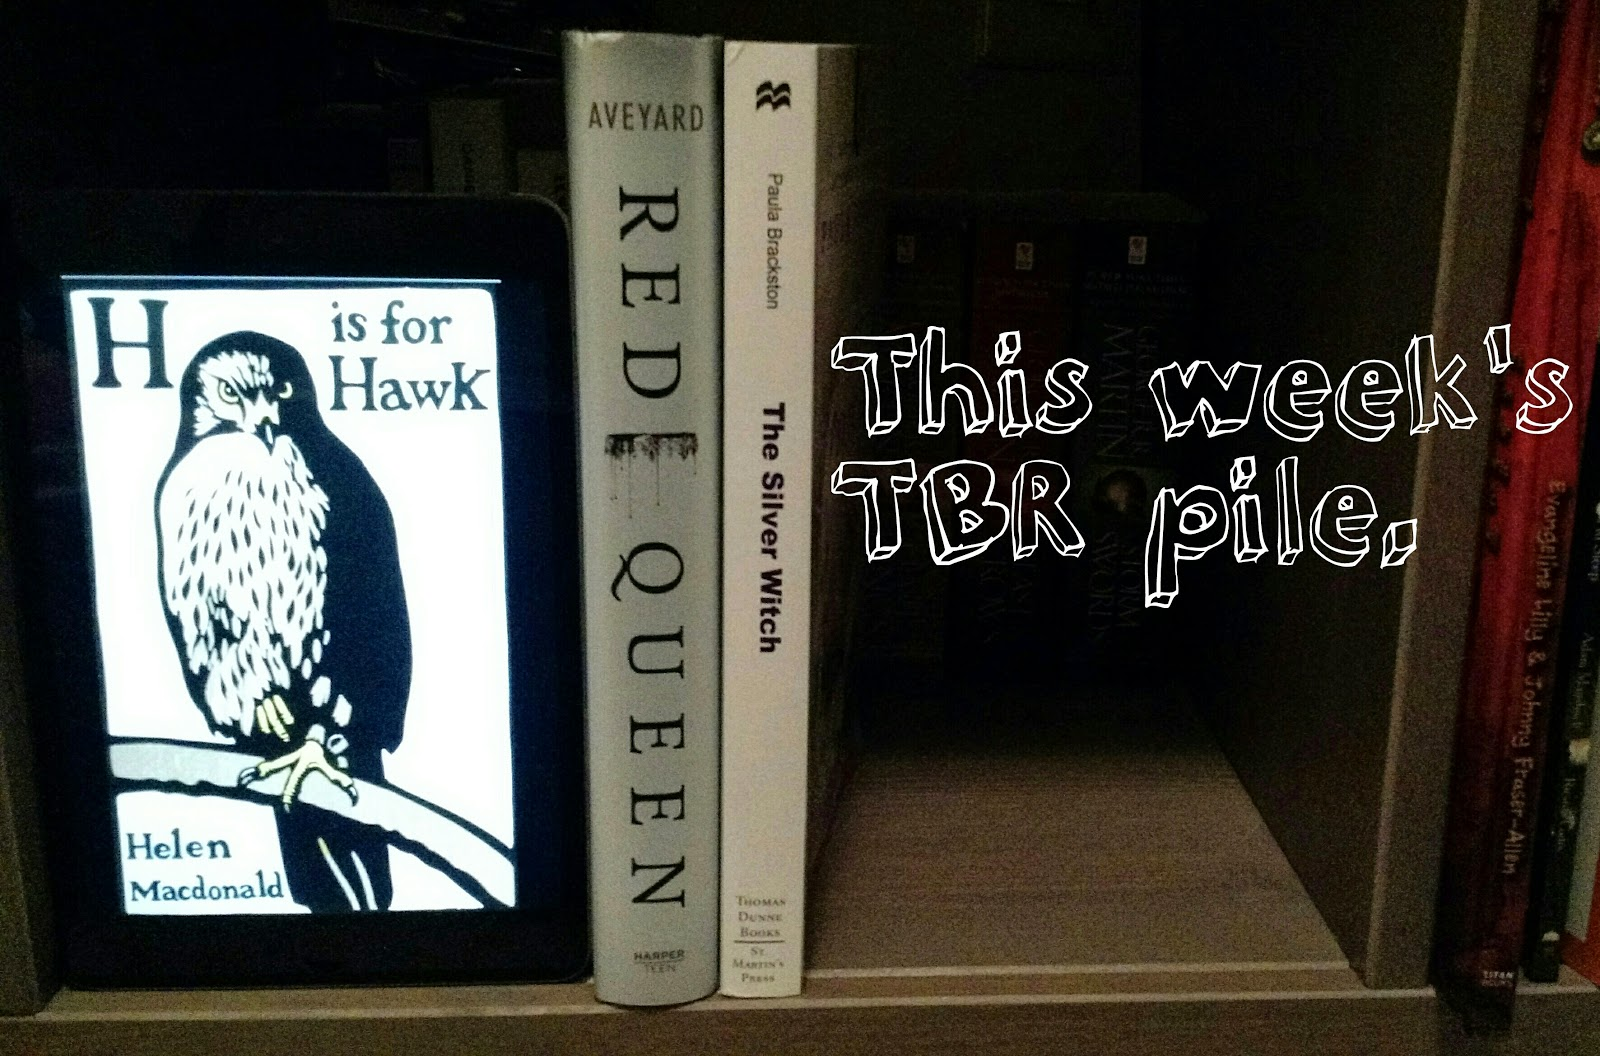 This Week, I'll Be Starting H Is For Hawk By Helen Macdonald This Memoir  Was Recommended By I've Read That, So I Have Been Really Anxious To Start  It